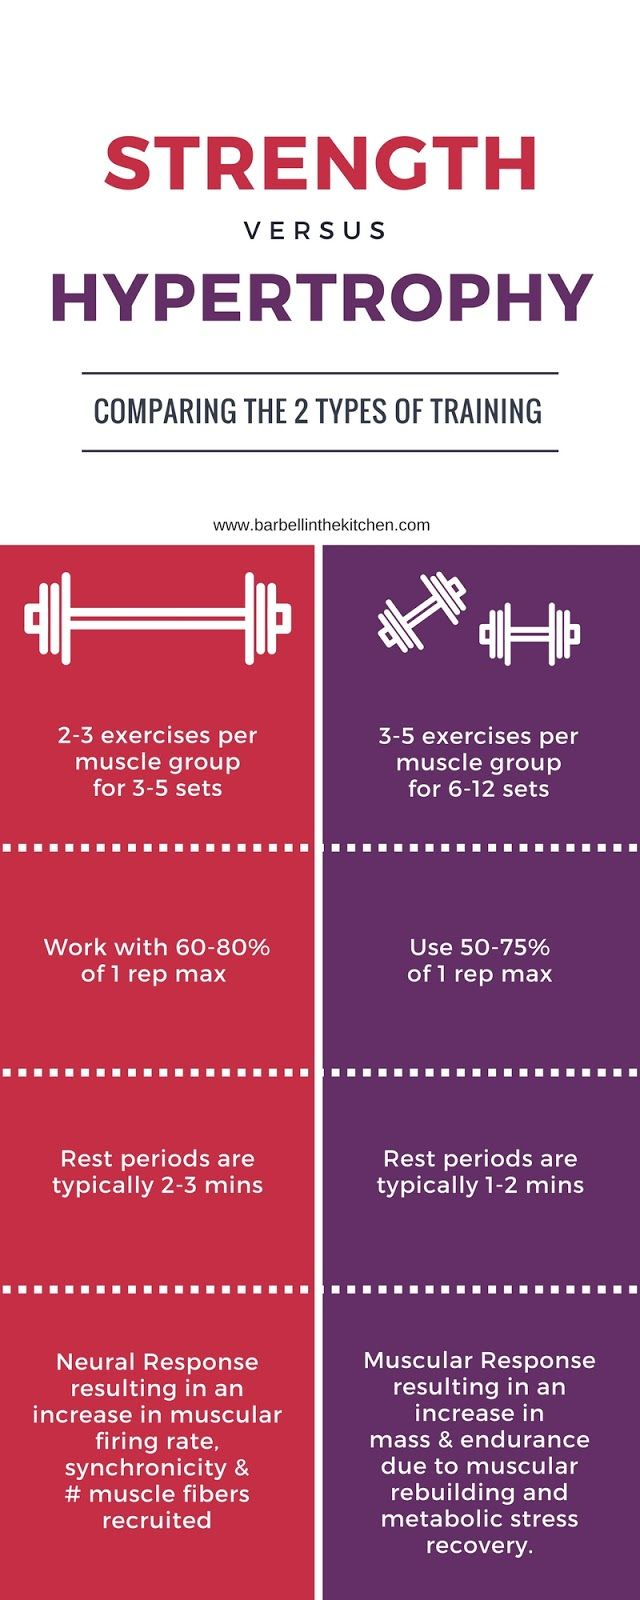 Important to understand that different types of training has different effects on the body! Hypertrophy vs Strength Training http://weightlosssucesss.pw/dont-be-duped-3-diet-foods-guaranteed-to-sabotage-your-health/